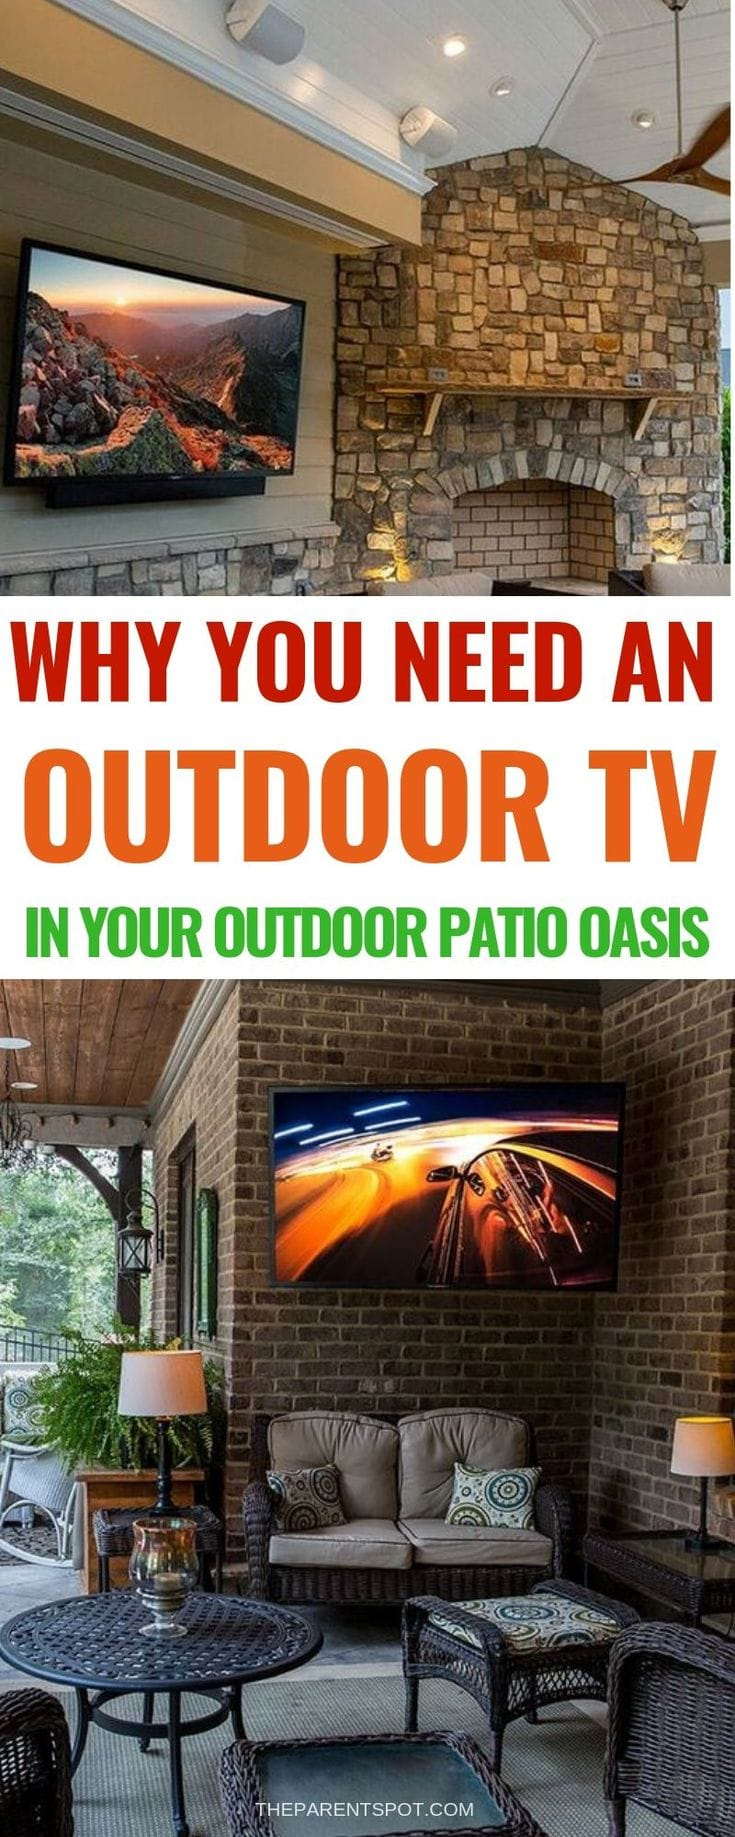 Why you need an outdoor TV area on your patio deck oasis